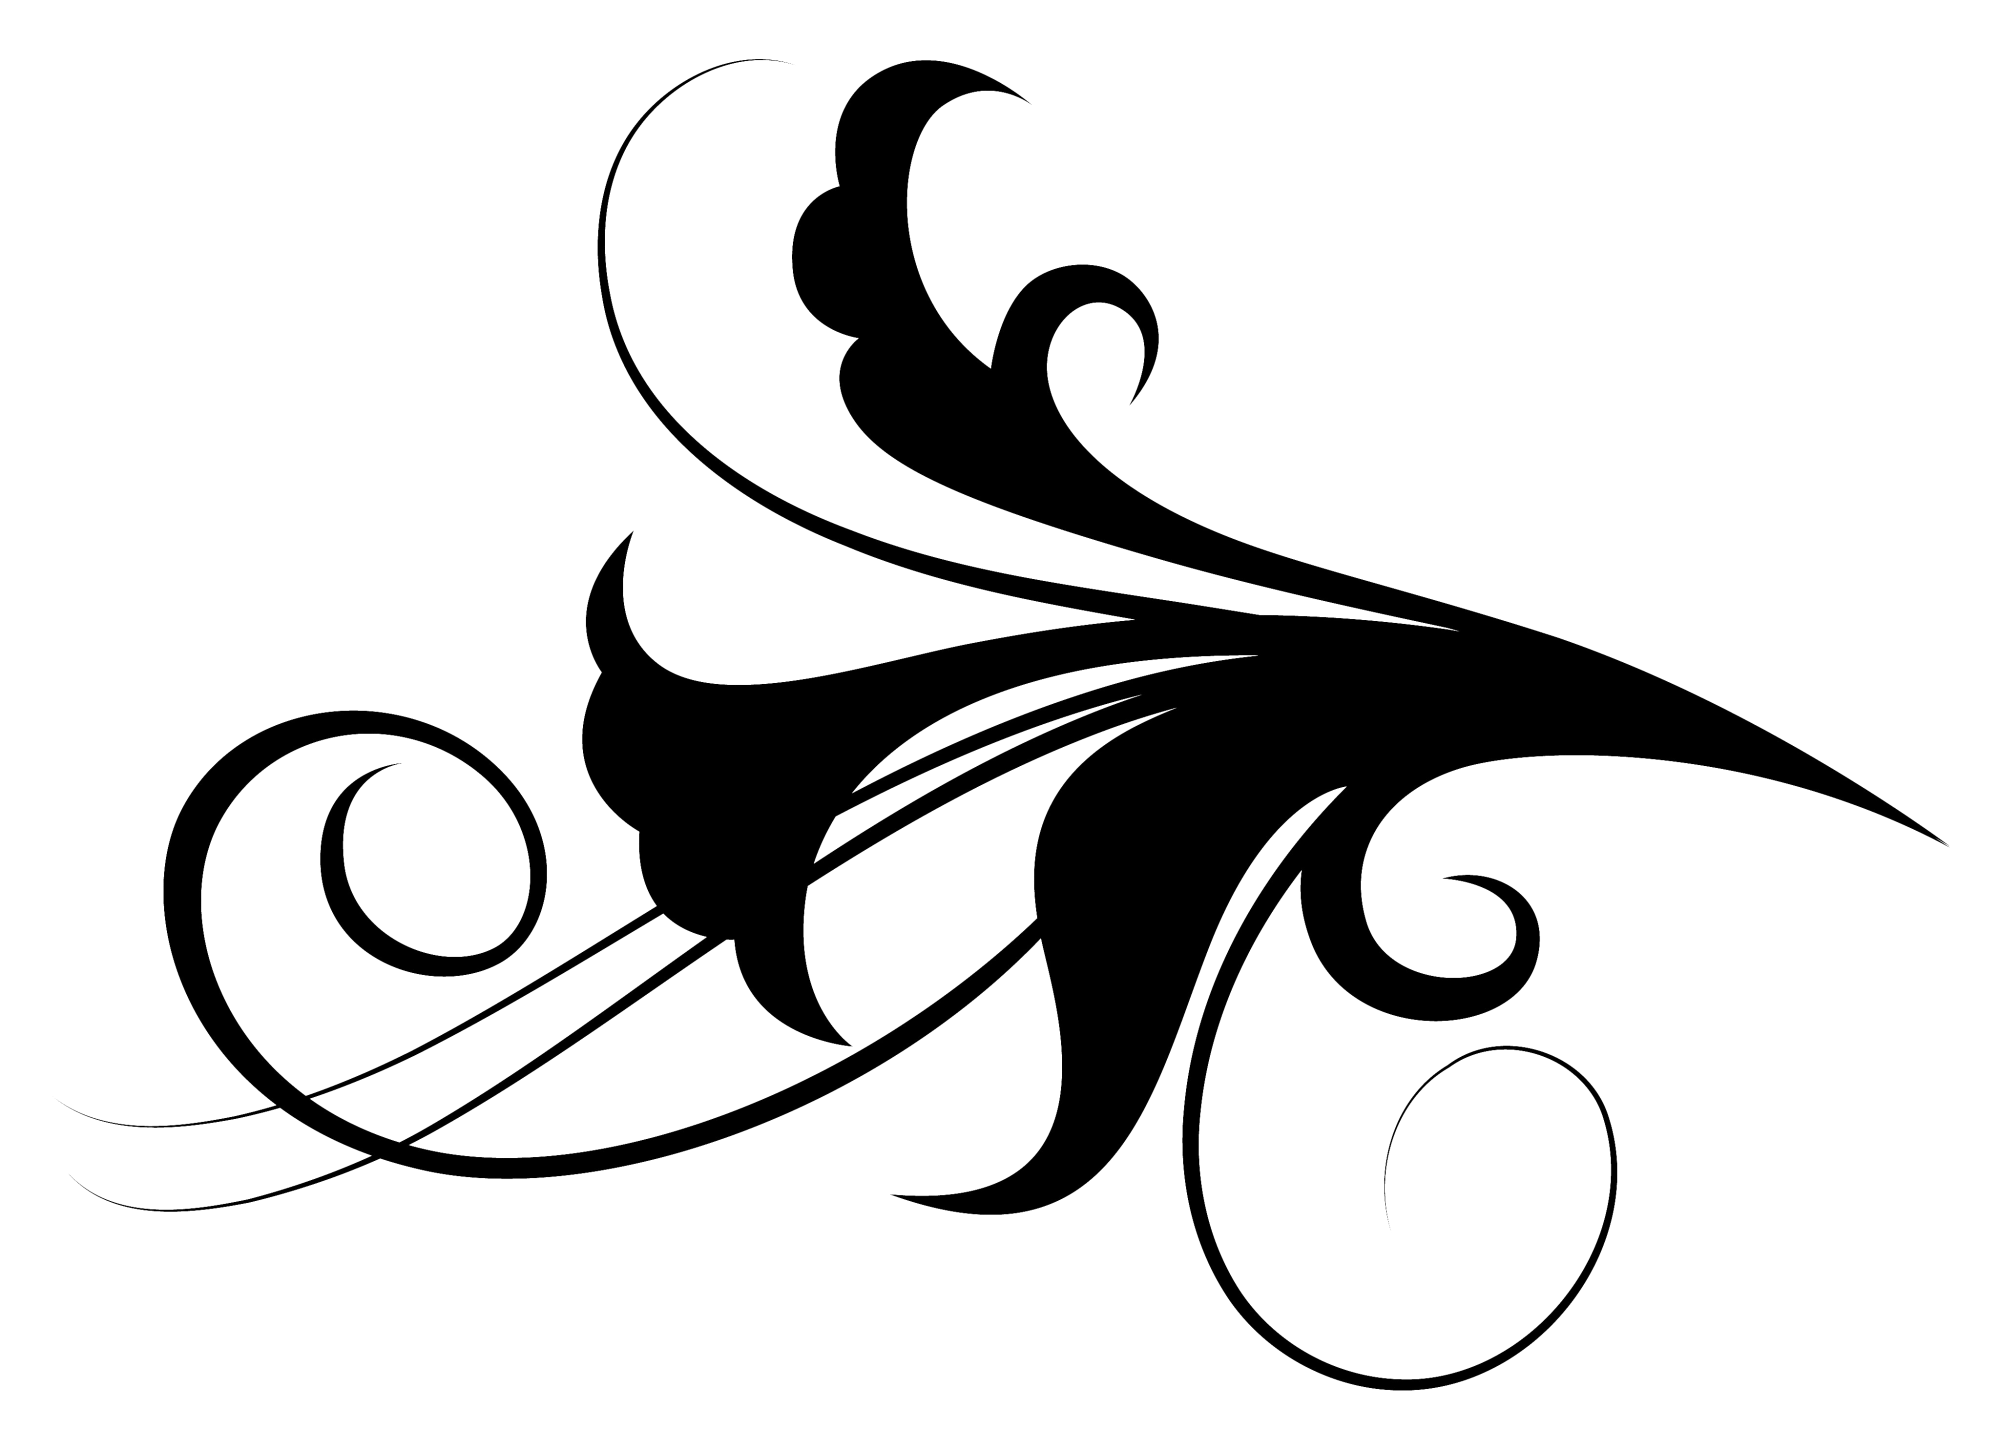 Free black and white clipart images filagree design clipart black and white library Graphic design Black and white - FILIGREE png download - 2000*1429 ... clipart black and white library